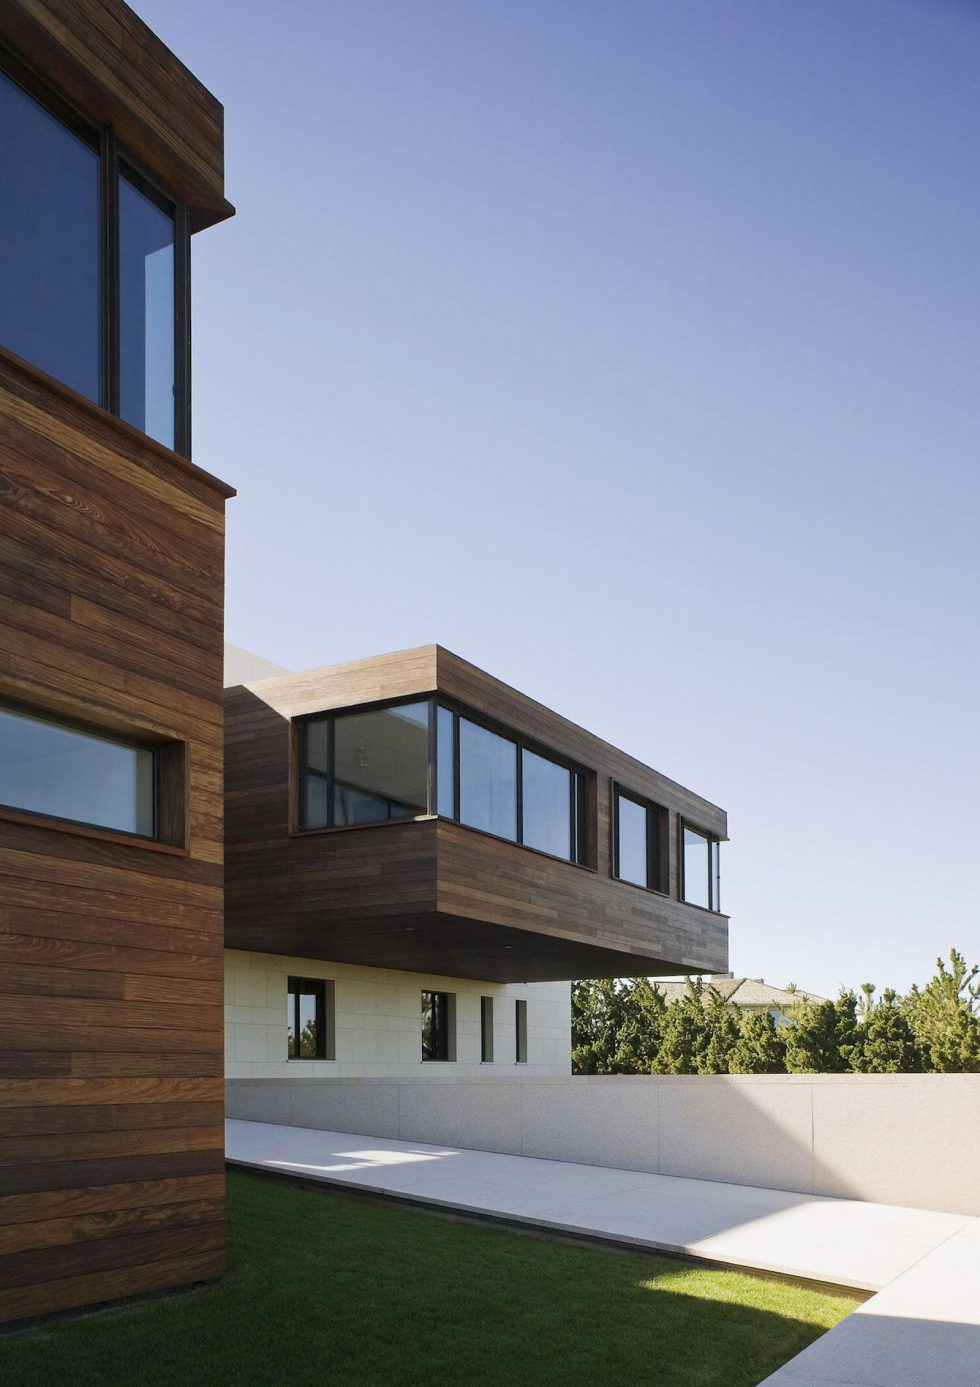 Luxurious House On The Shore From Alexander Gorlin Architects 2